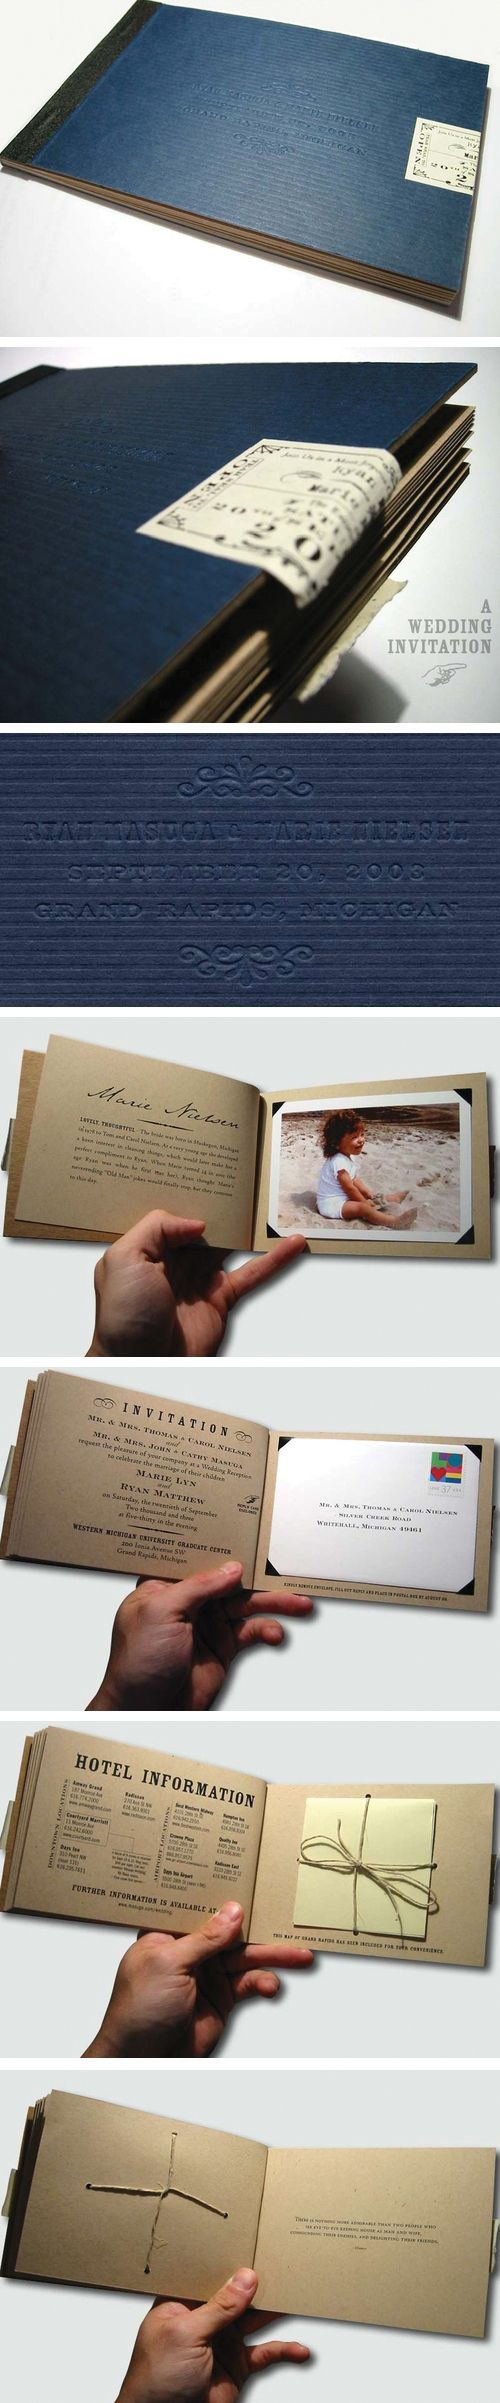 Invitation Booklets: Romantic Wedding, Beautiful Booklet, Beautiful Paper, Invitations Booklet, Beautiful Invitations, Wedding Invitations, Booklet Invitations, Booklet Design, Invitations Ideas